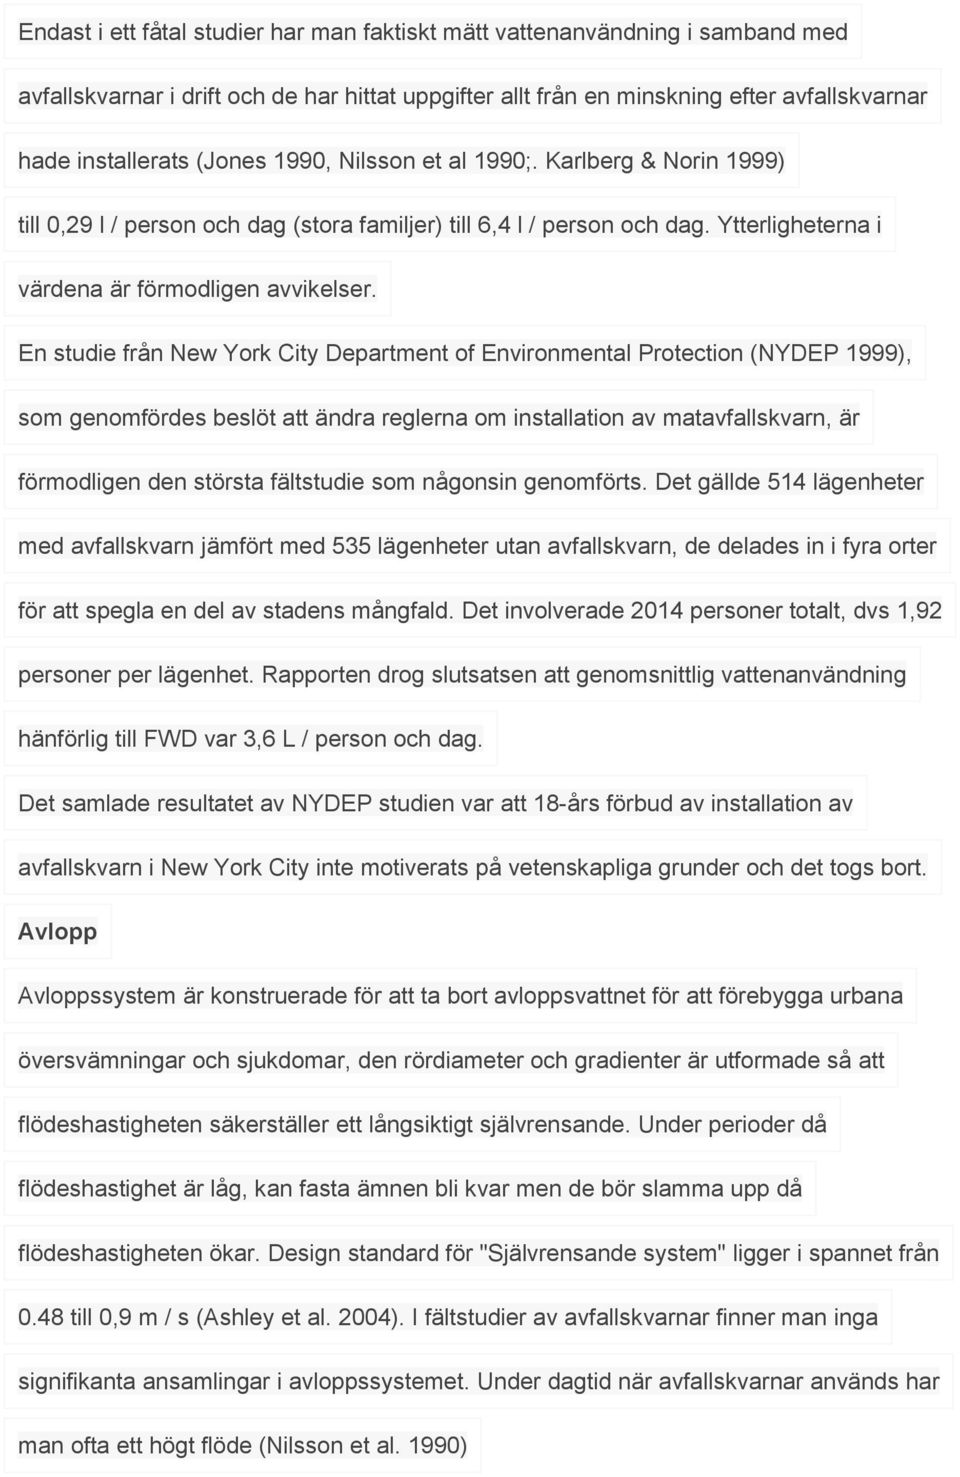 En studie från New York City Department of Environmental Protection (NYDEP 1999), som genomfördes beslöt att ändra reglerna om installation av matavfallskvarn, är förmodligen den största fältstudie